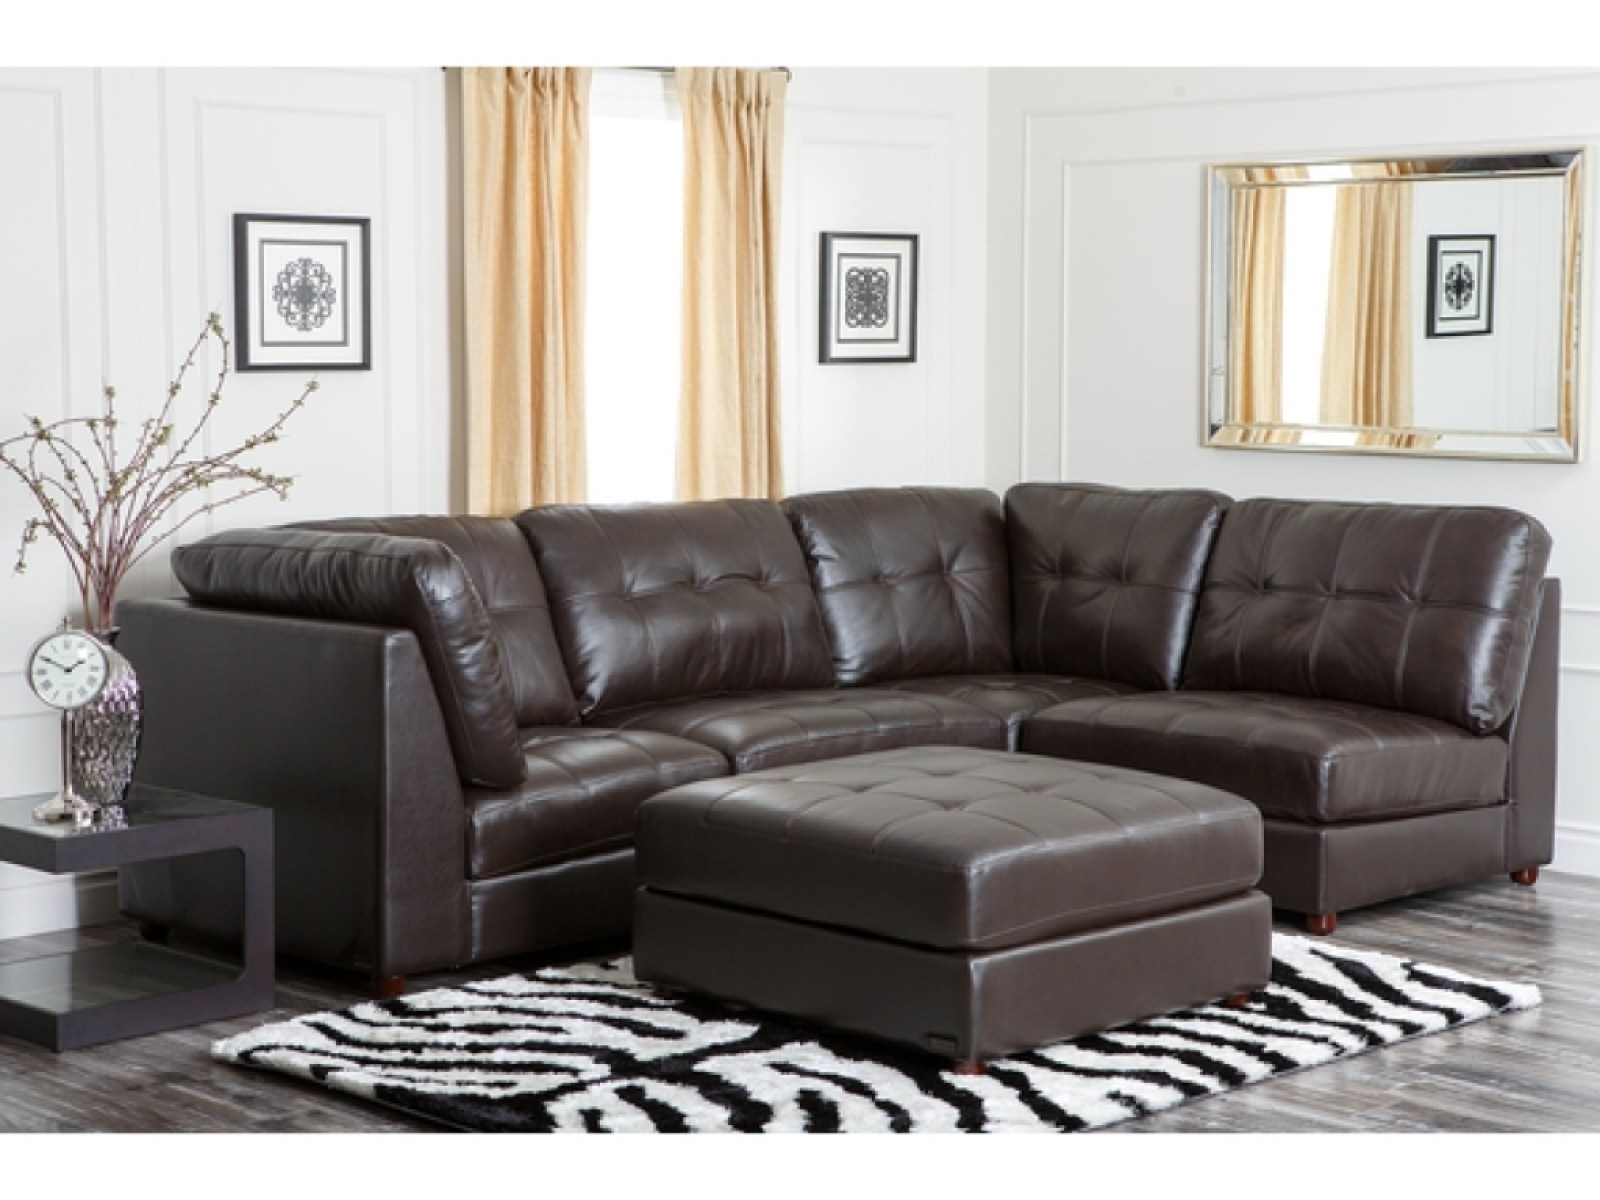 Sectional Sofas That Can Be Rearranged Throughout Trendy ▻ Sofa : 15 3058702 Poster P 1 A Modular Sofa That Can Rearrange (View 7 of 15)